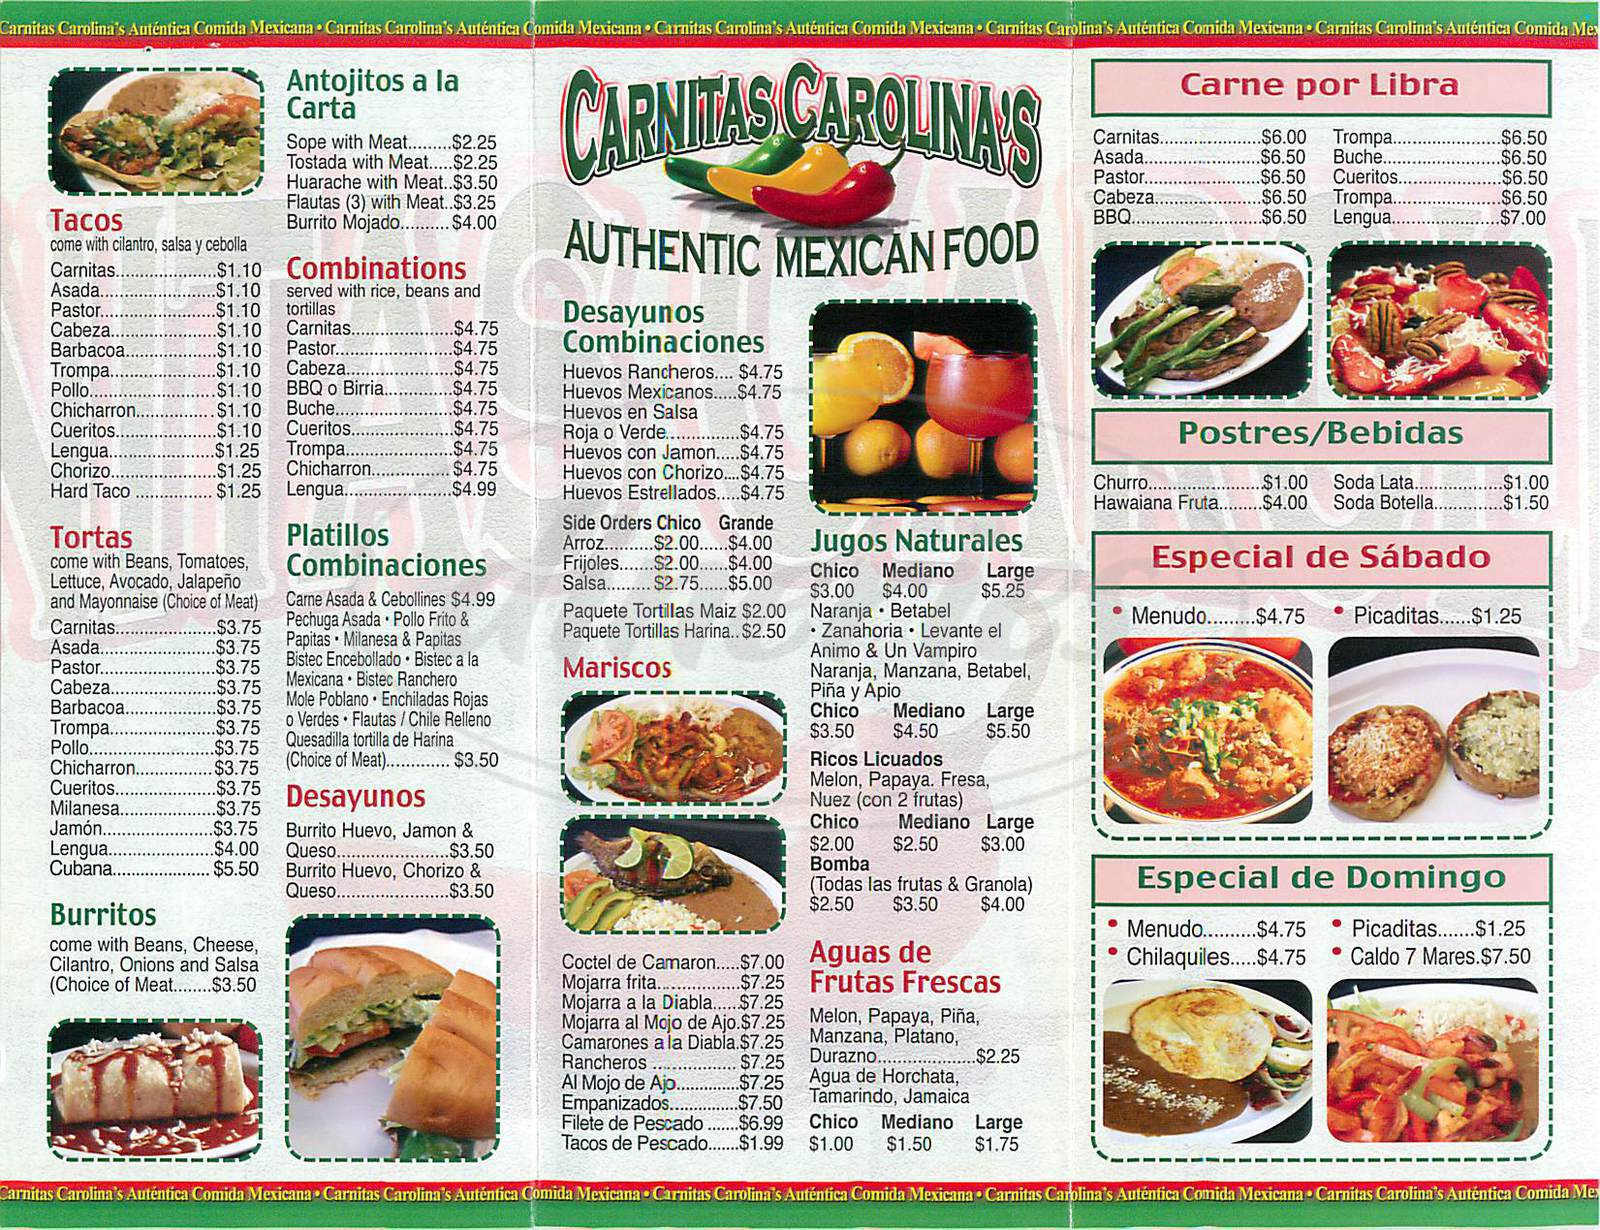 menu for Carnitas Carolina's